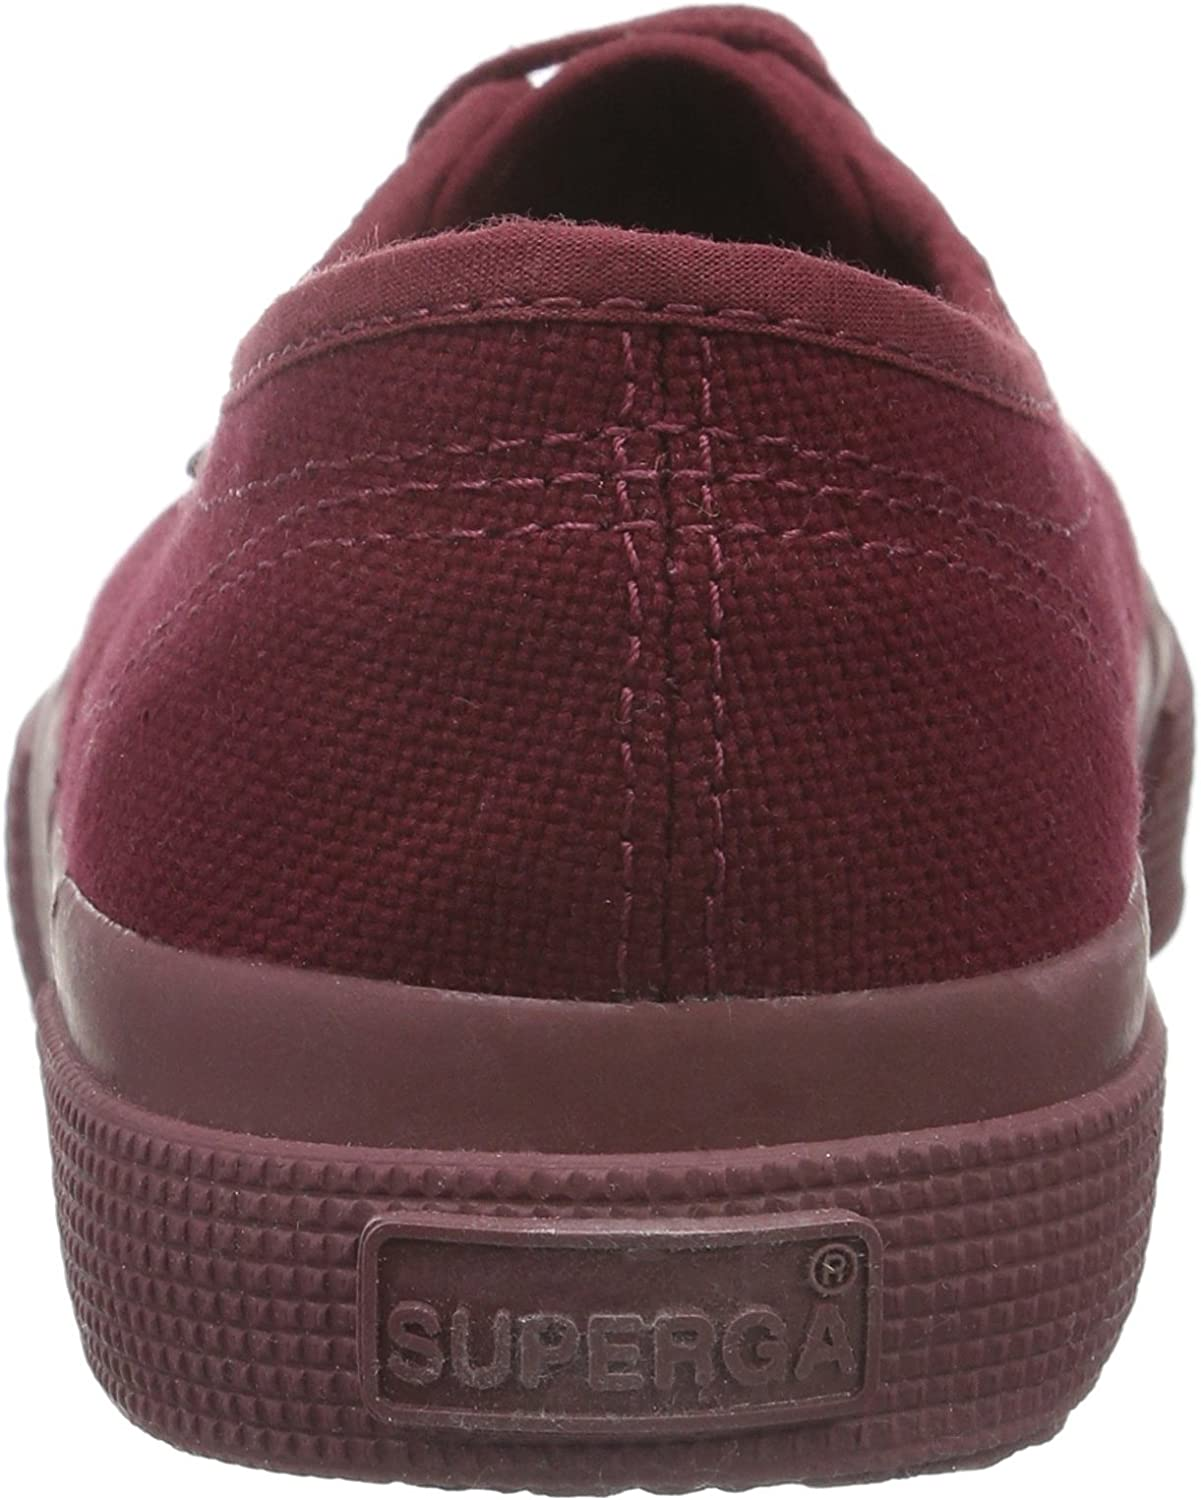 Superga 2750 Cotu Classic Trainers, Baskets Basses Mixte Adulte Rot F52